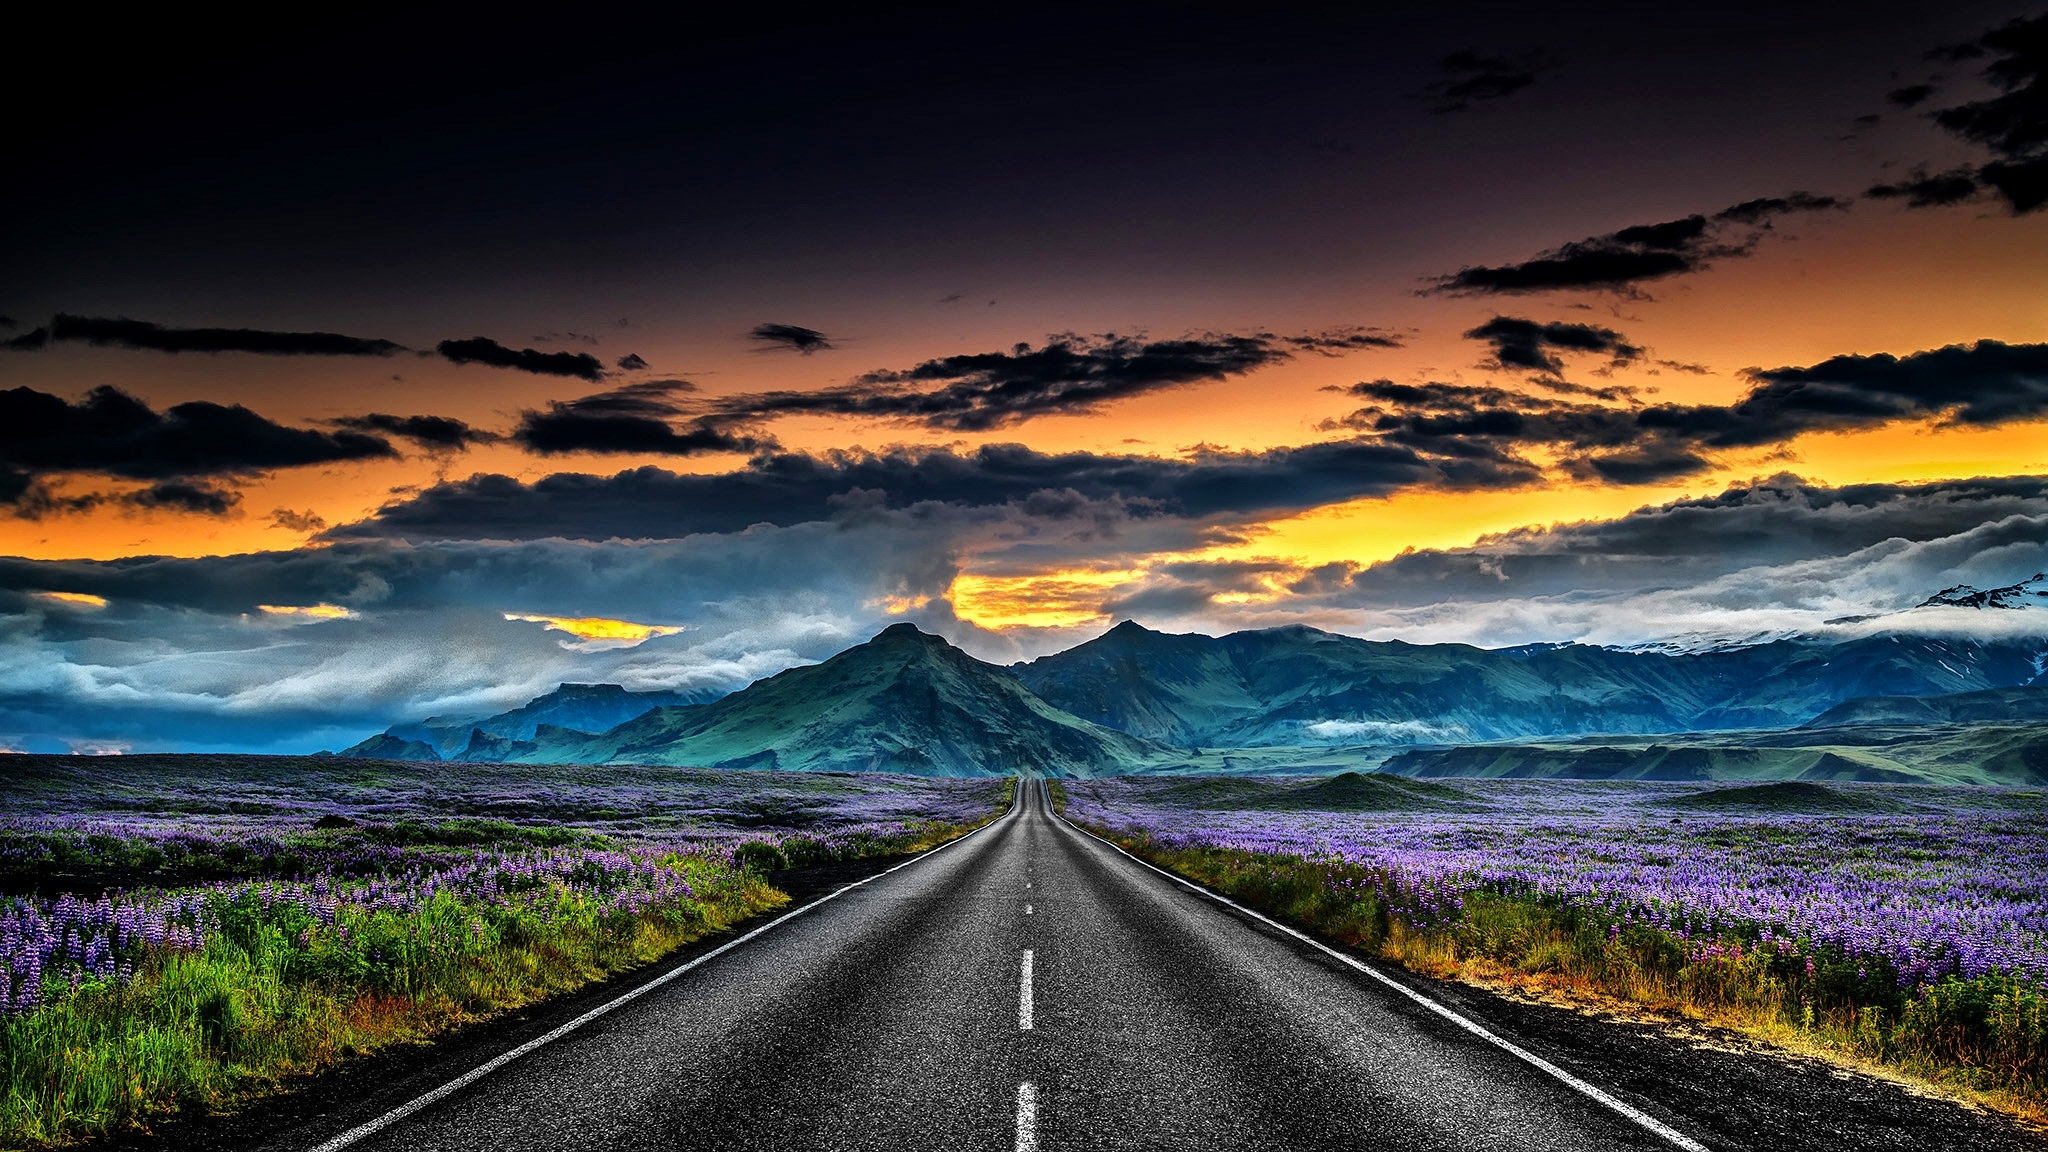 Iceland Landscapes Road Wallpaper Hd Nature 4k Wallpapers Images Photos And Background